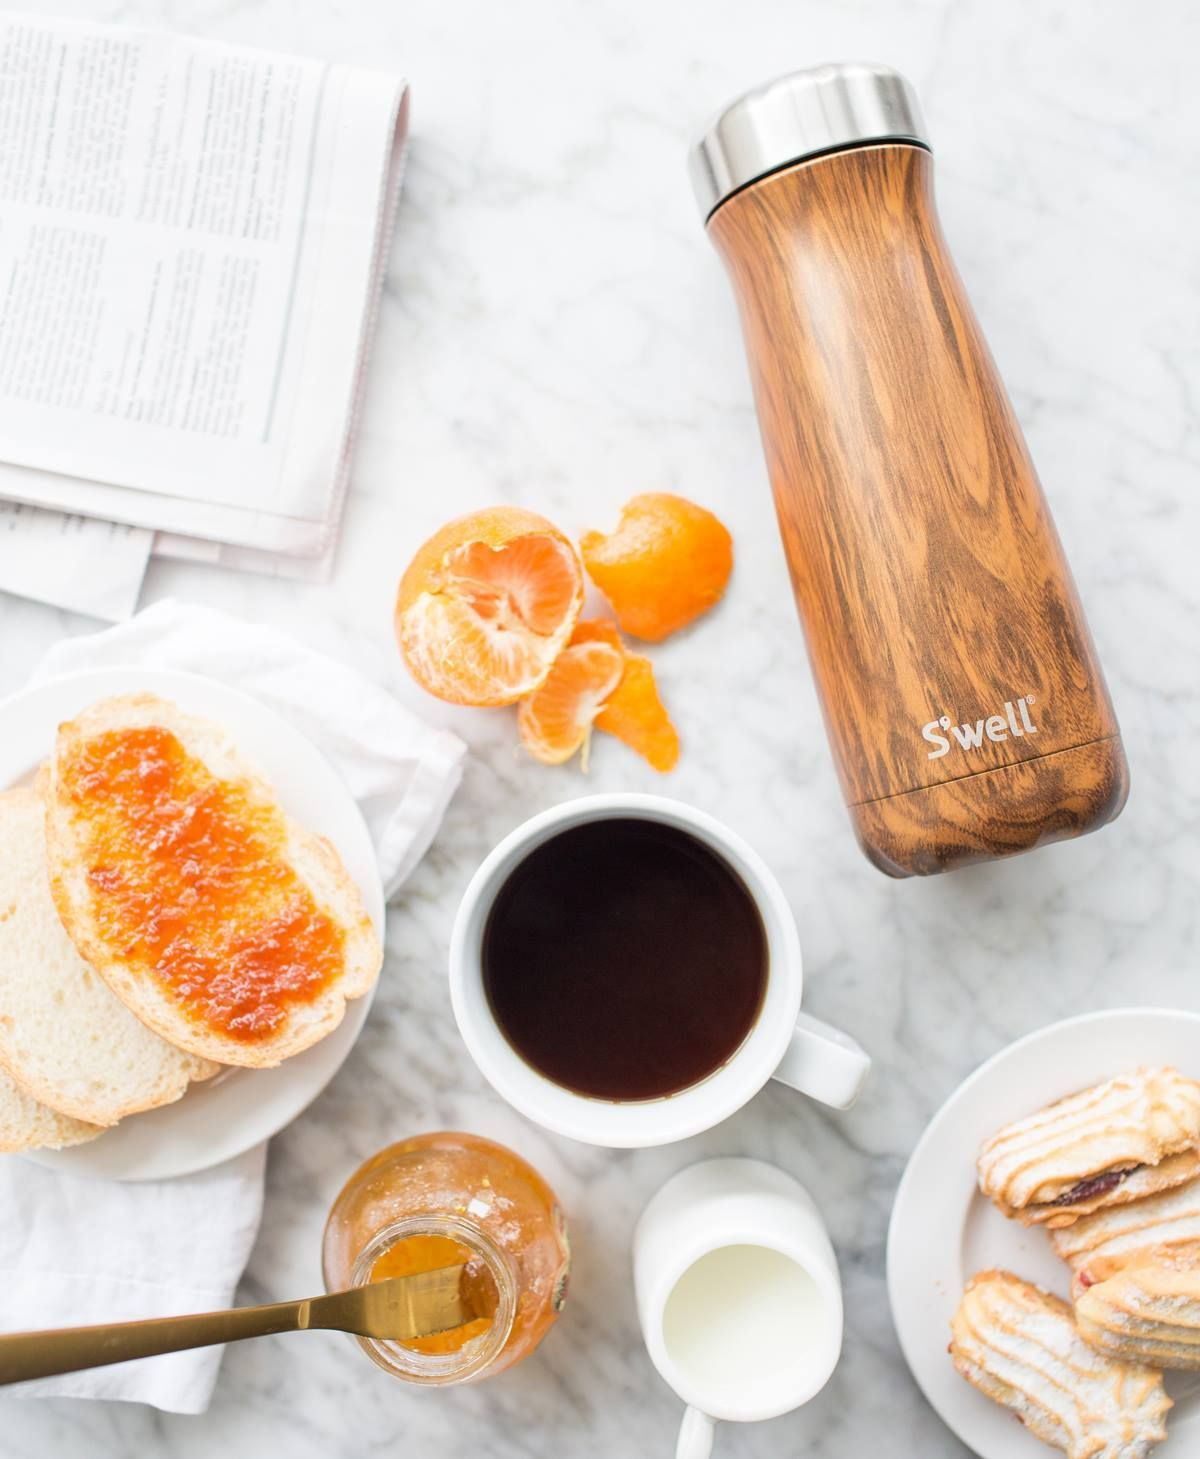 Rid The World Of Plastic Water Bottles Swellbottle Are Bpa Free Super Durable And Look Amazing Weekend Brunch Brunch Spots Brunch